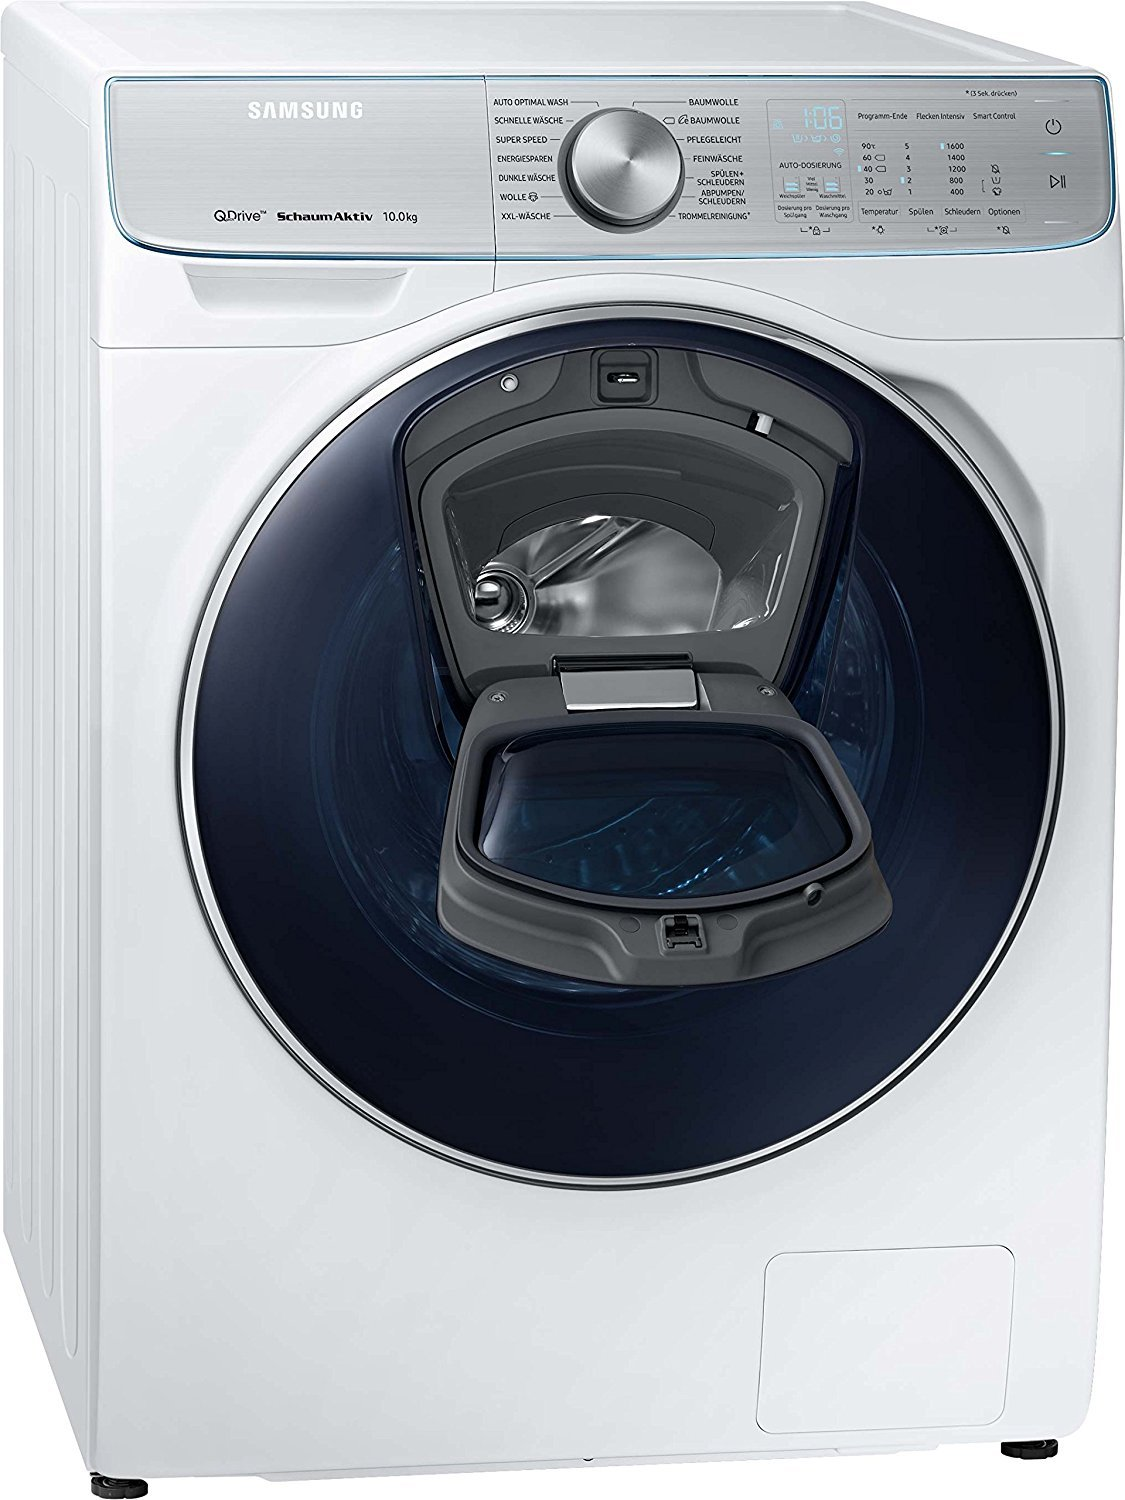 Samsung-WW8800-WW10M86BQOAEG-QuickDrive-Waschmaschine-A-1600-UpM-10-kg-Automatische-Waschmitteldosierung-AddWashSchaumAktiv-Technologie-SmartControl-20-Amazon-Dash-Replenishment-fhig